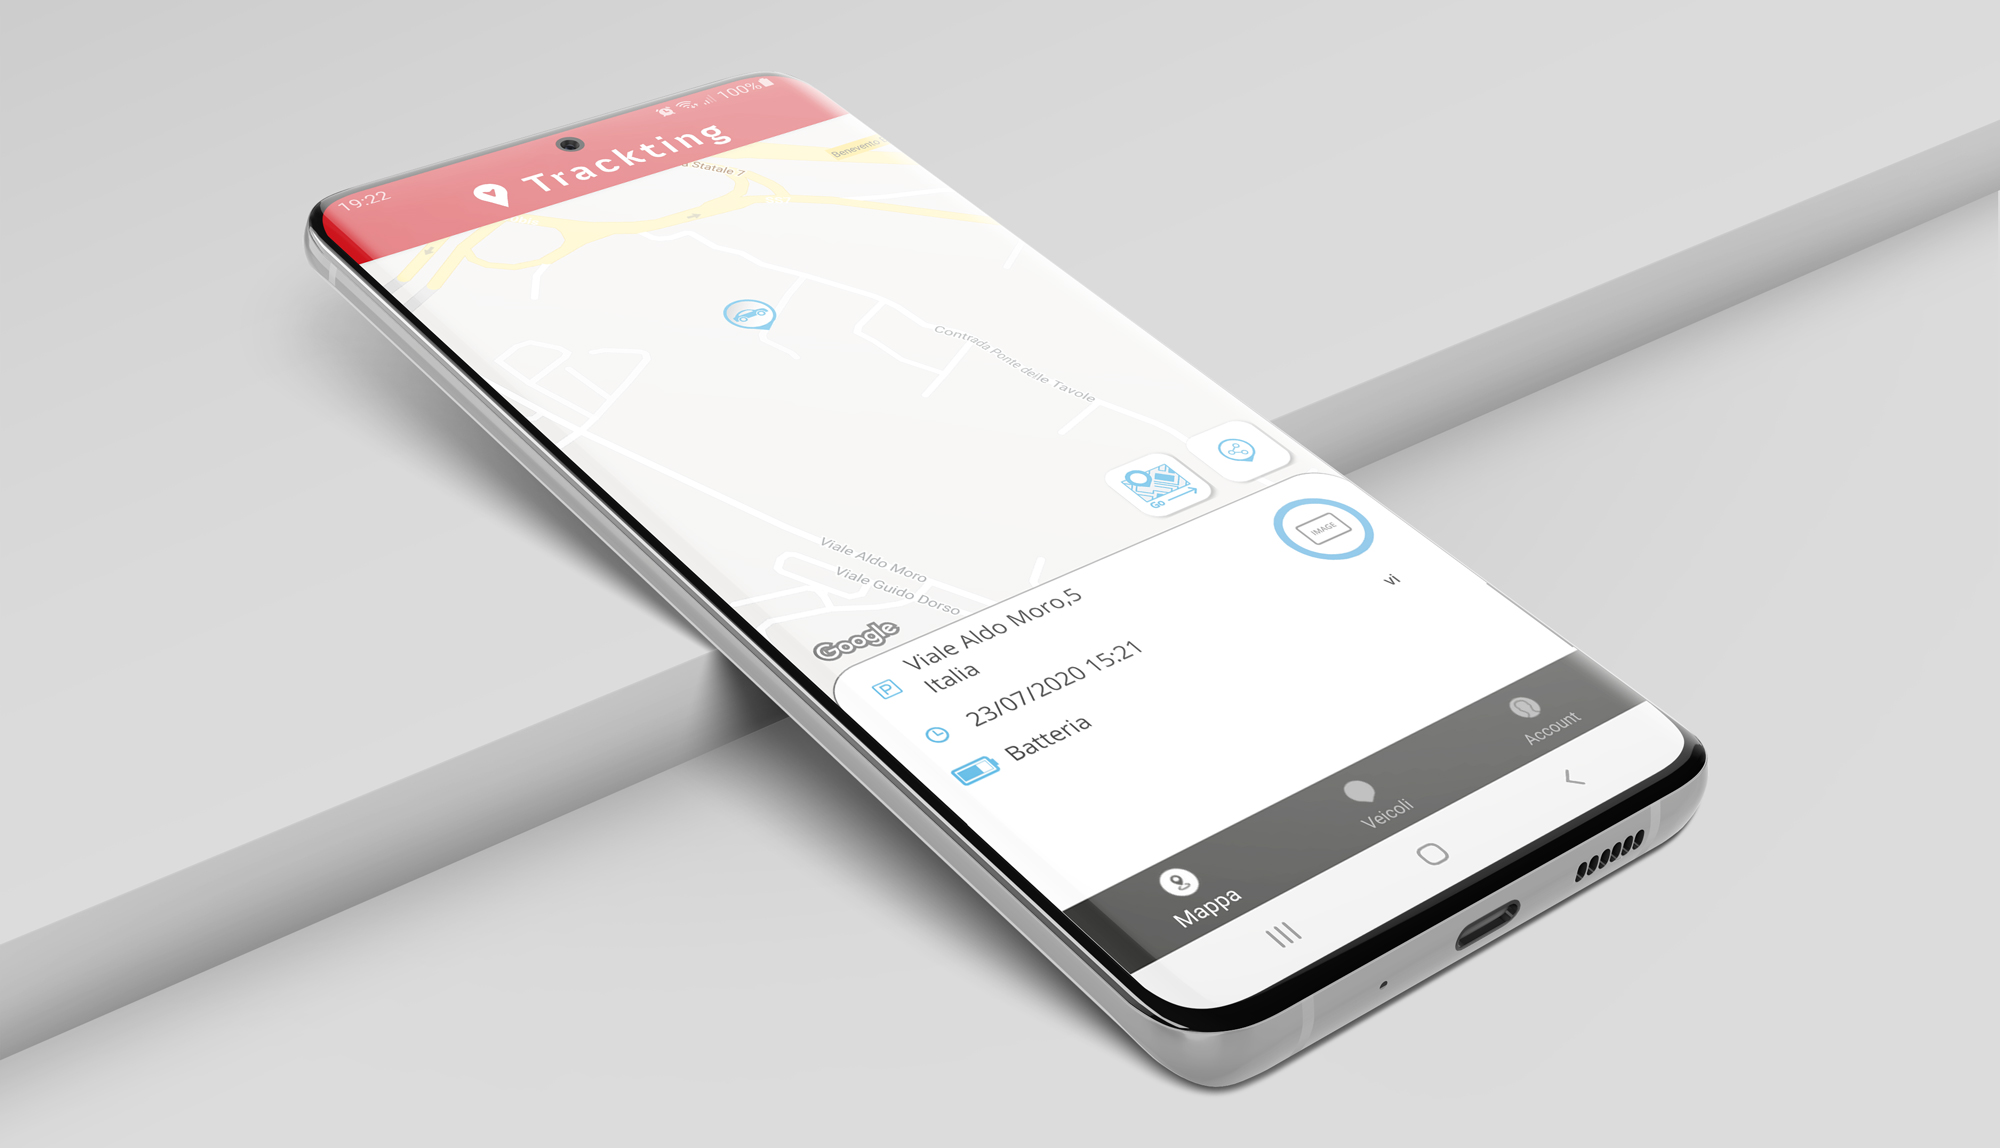 Smart Alarm by Trackting cellulare app